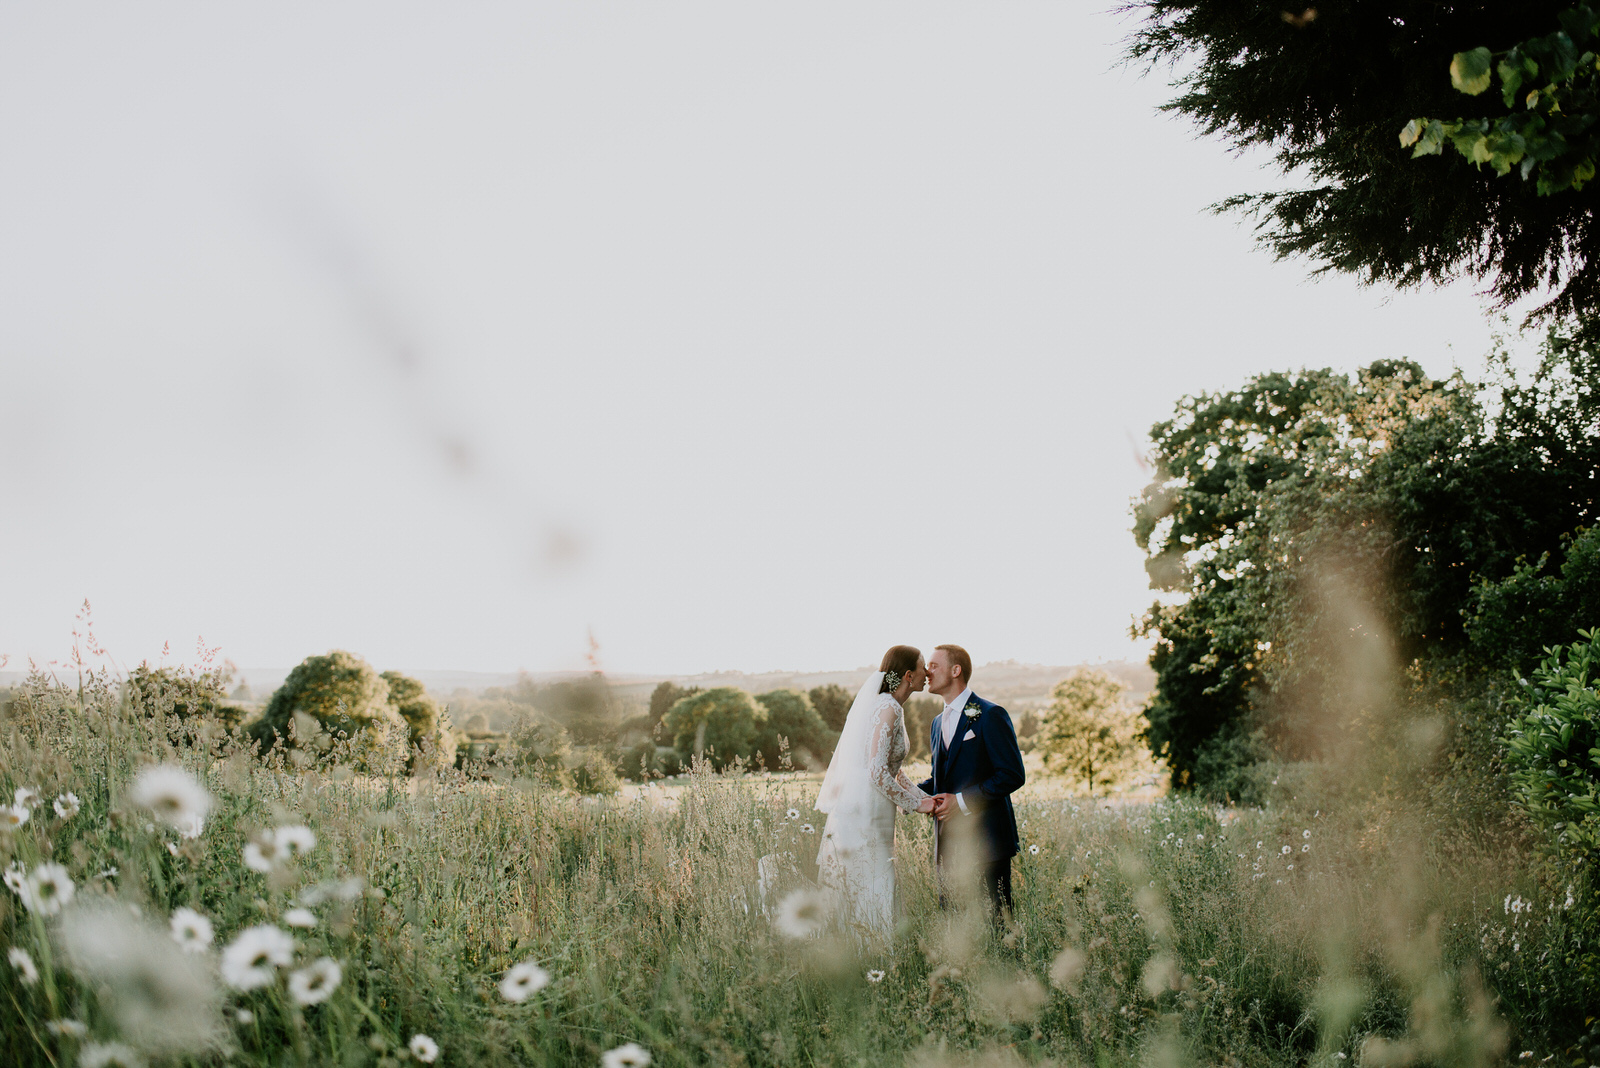 Intimate_Warwickshire_Countryside_Wedding_UK_88.JPG